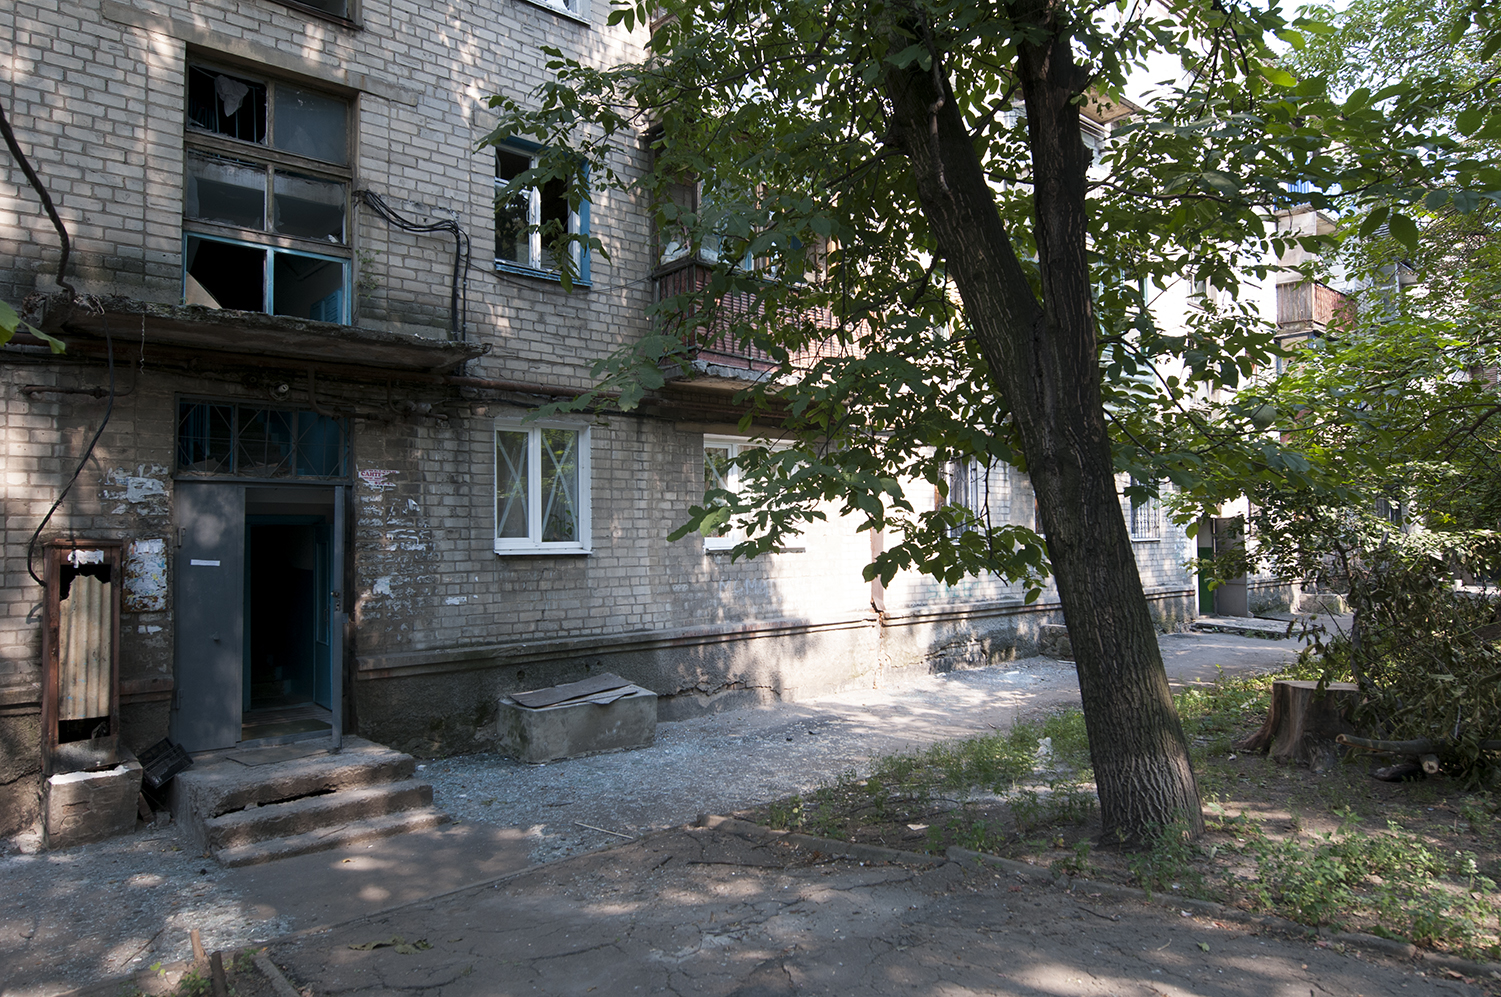 Scatteredglass which have been blown away by the shelling that took place during the evening of the 9th August in the north part of Donetsk